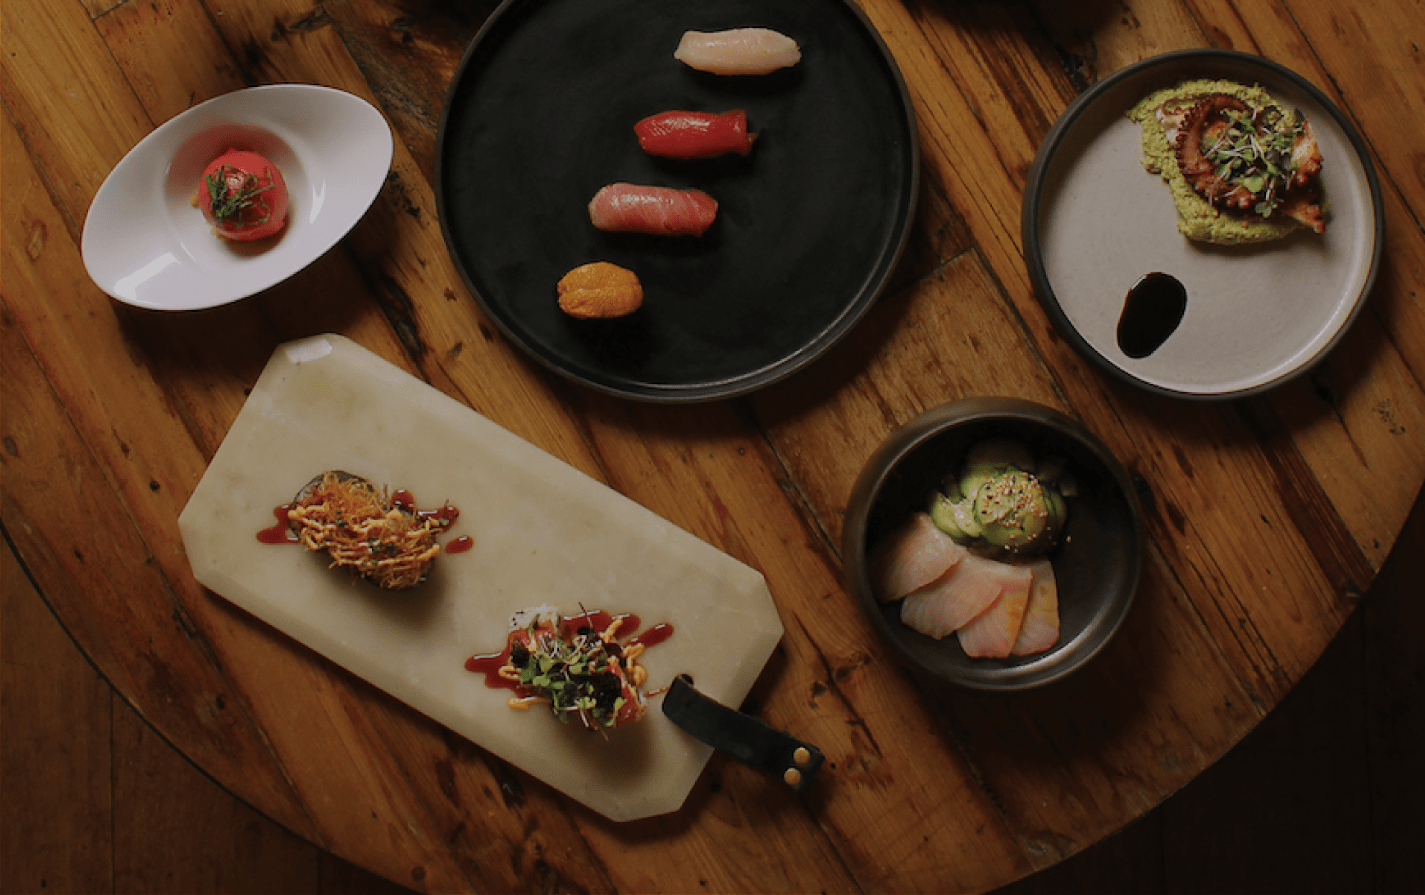 Sushi dishes on a table